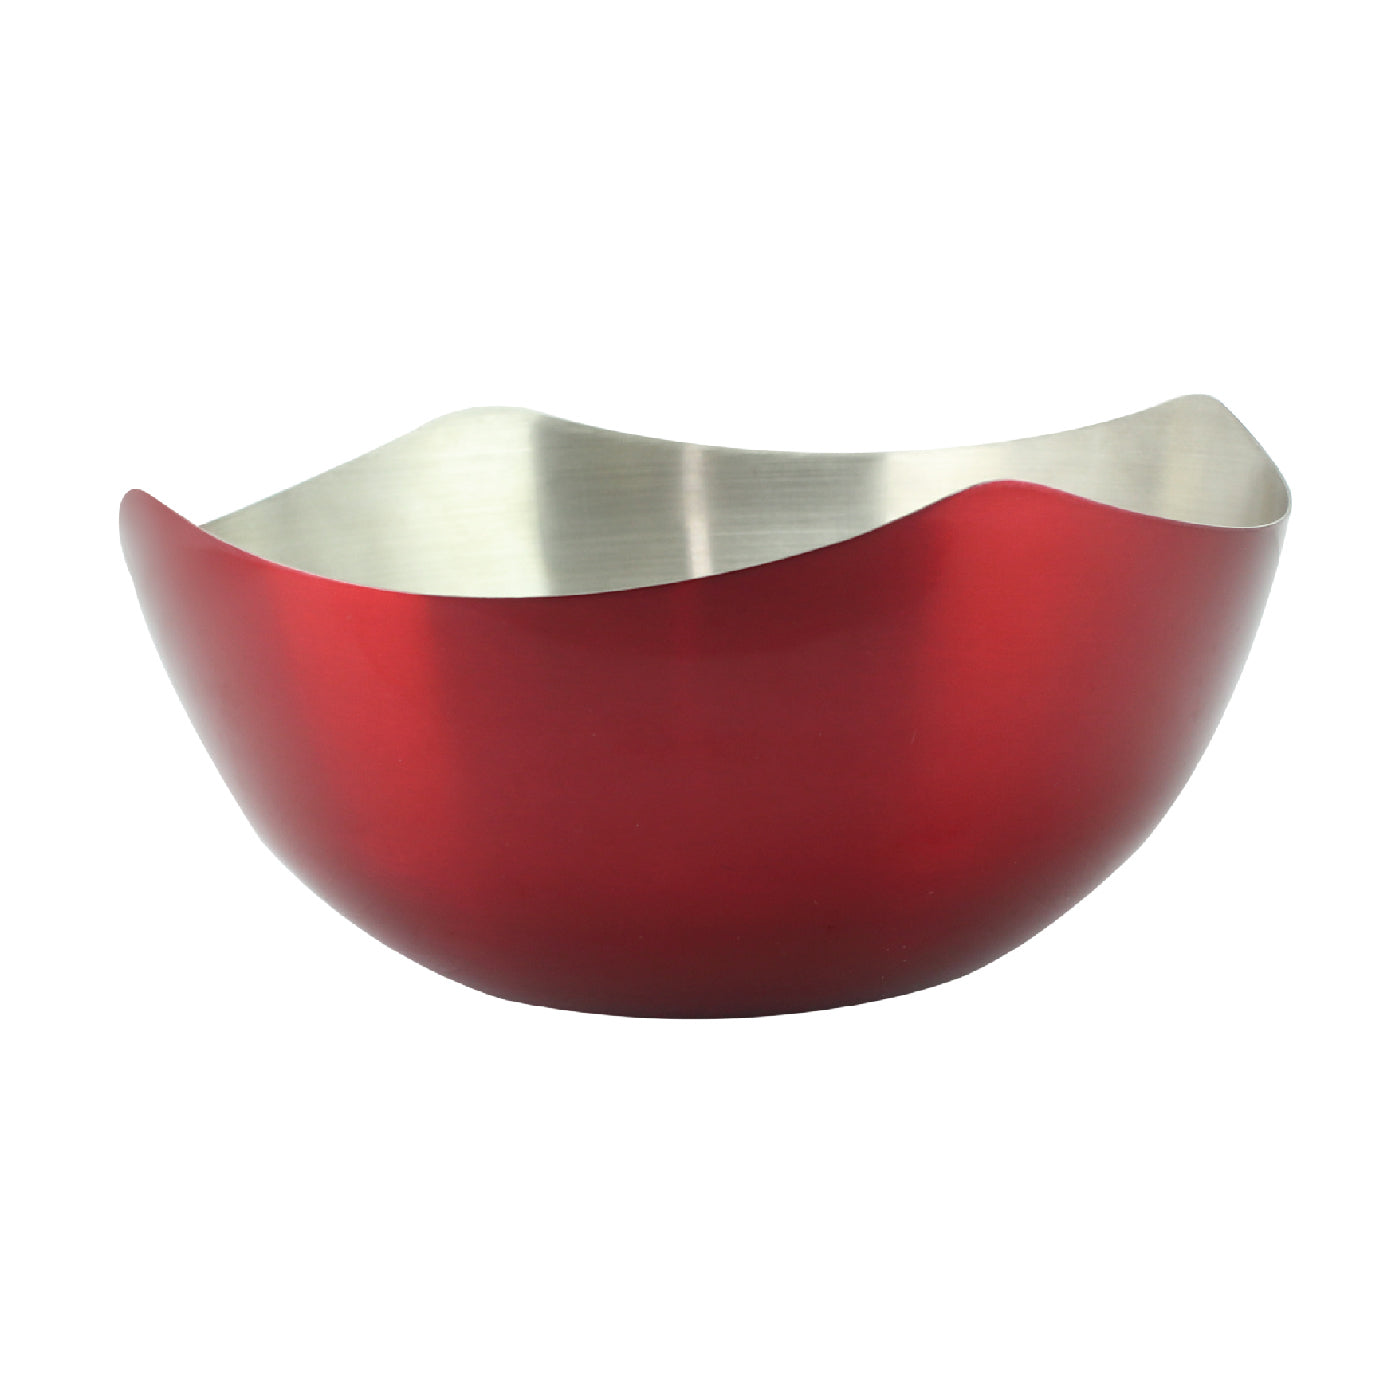 Royalford RF6938 Stainless Steel 4 Corner Lacquered Bowl, 19 CM